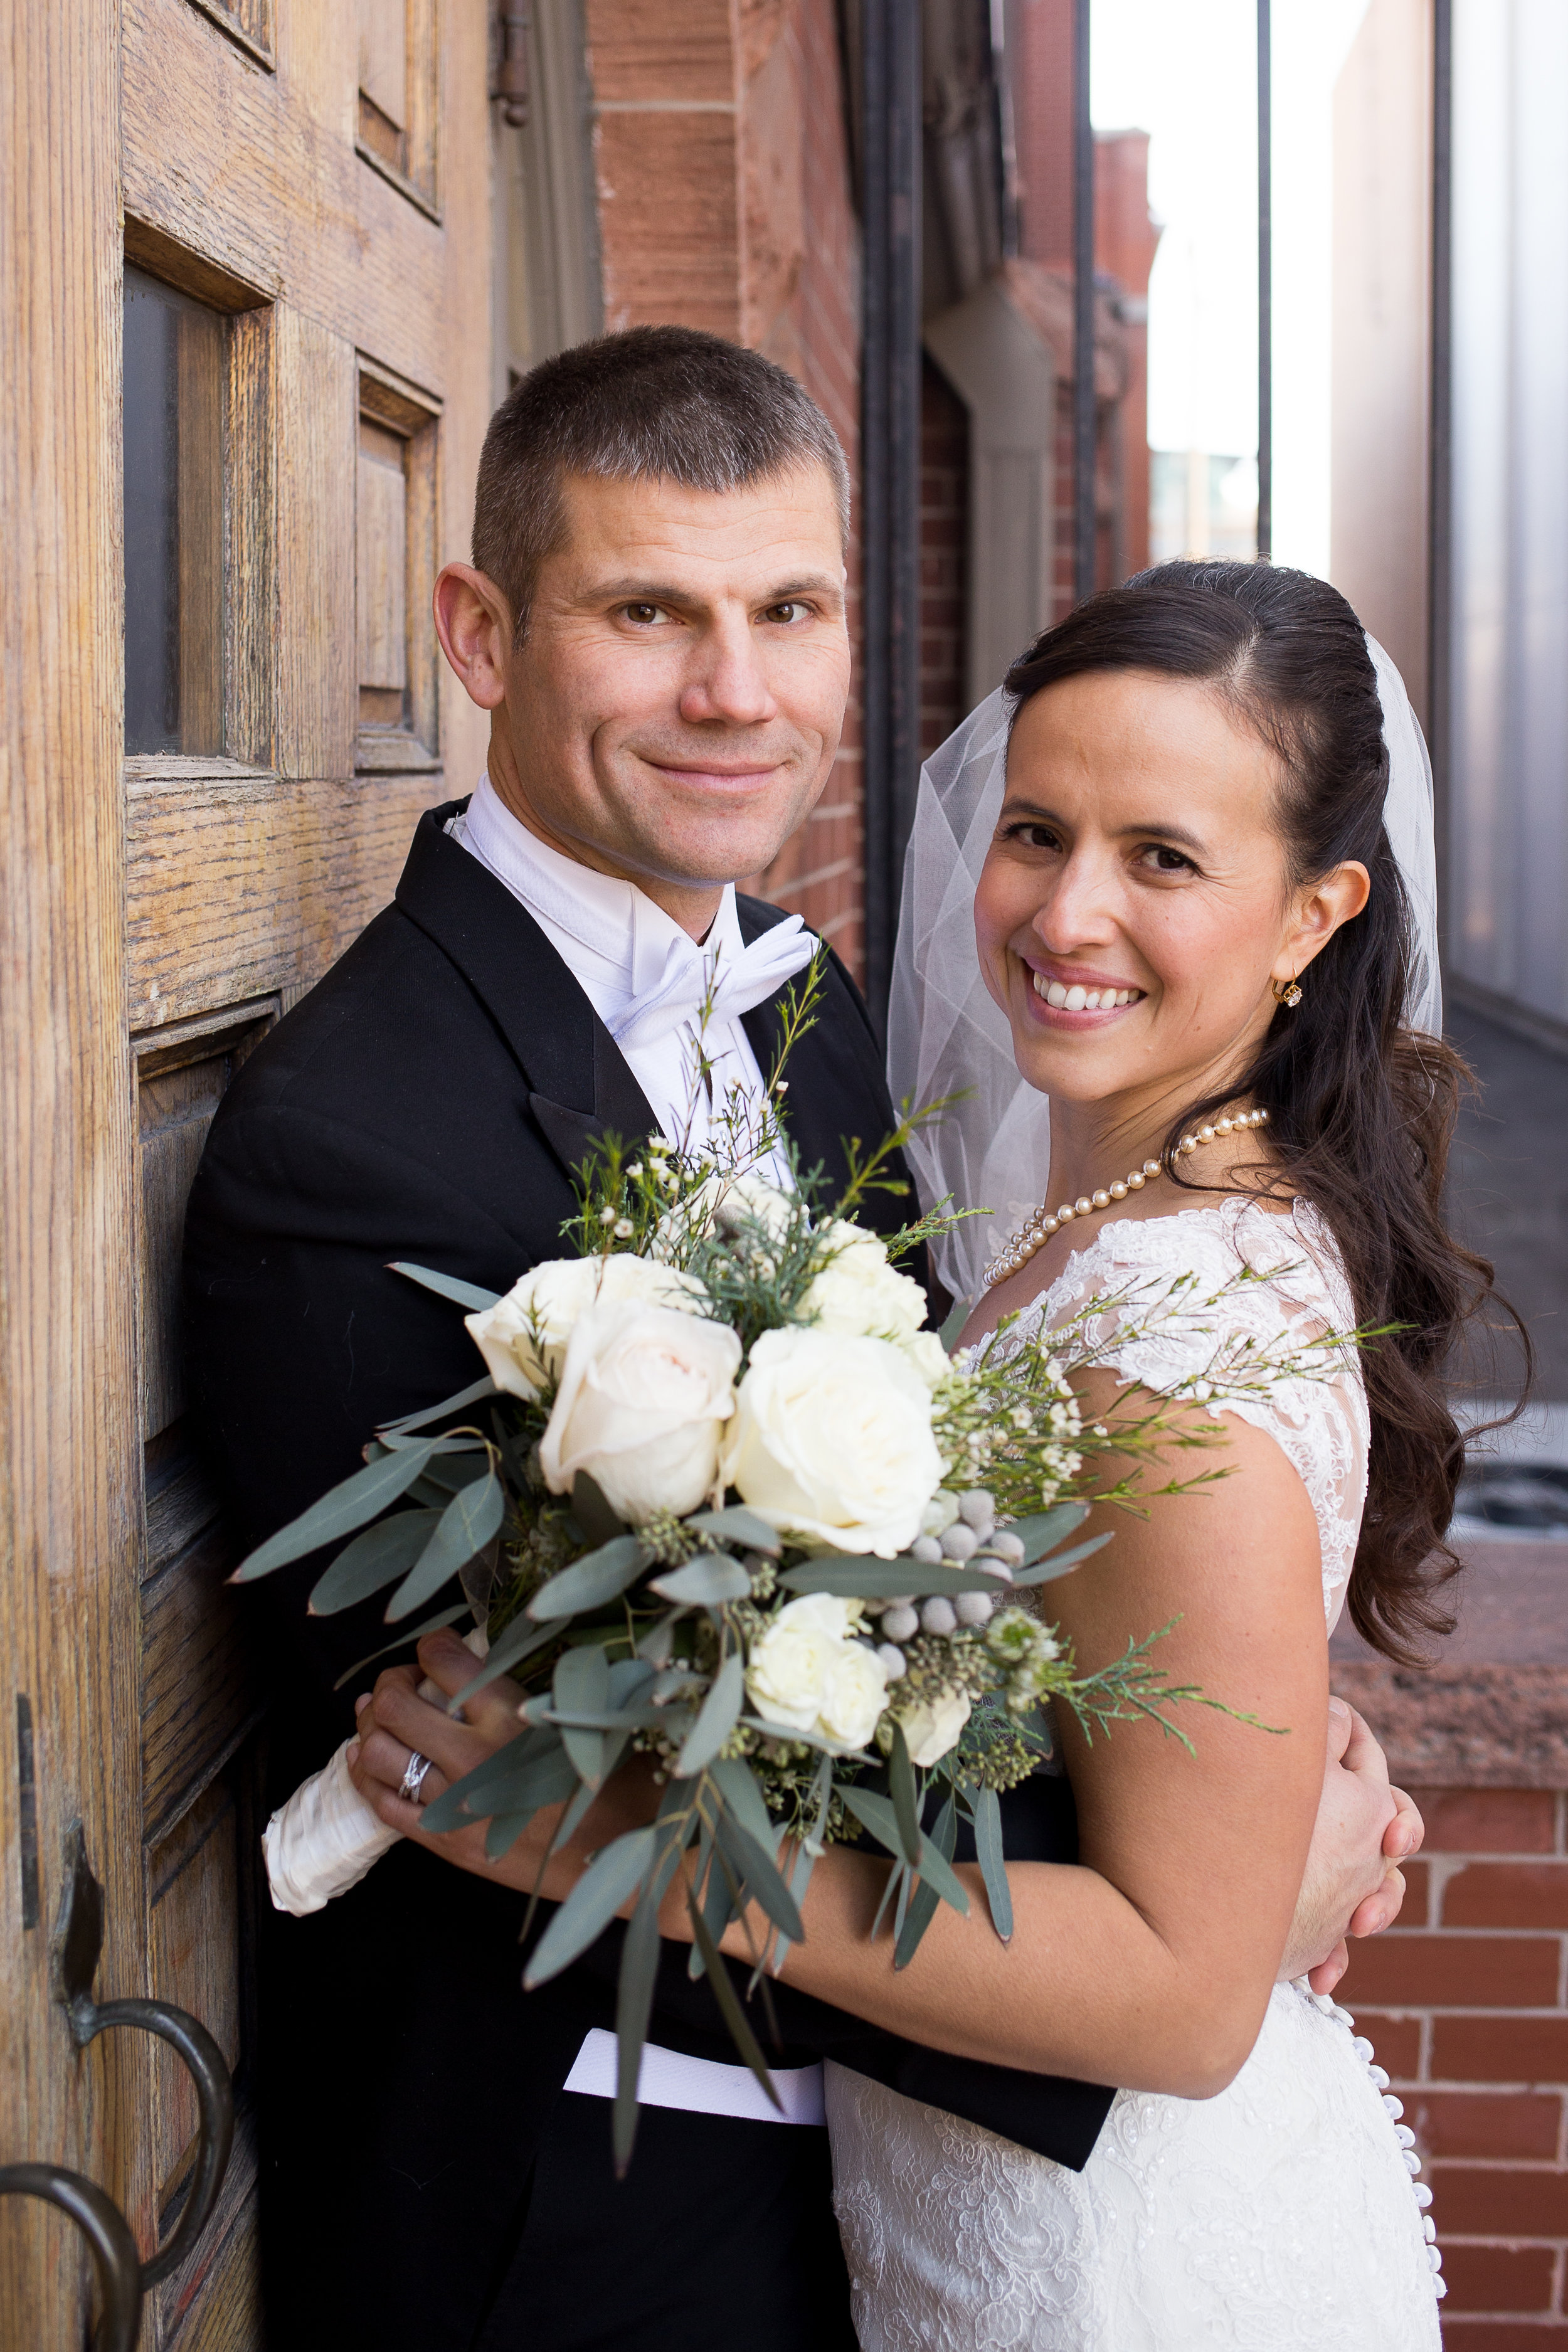 Winter Wedding at First Baptist Church outside by the brick wall in Colorado Springs Stacy Carosa Photography